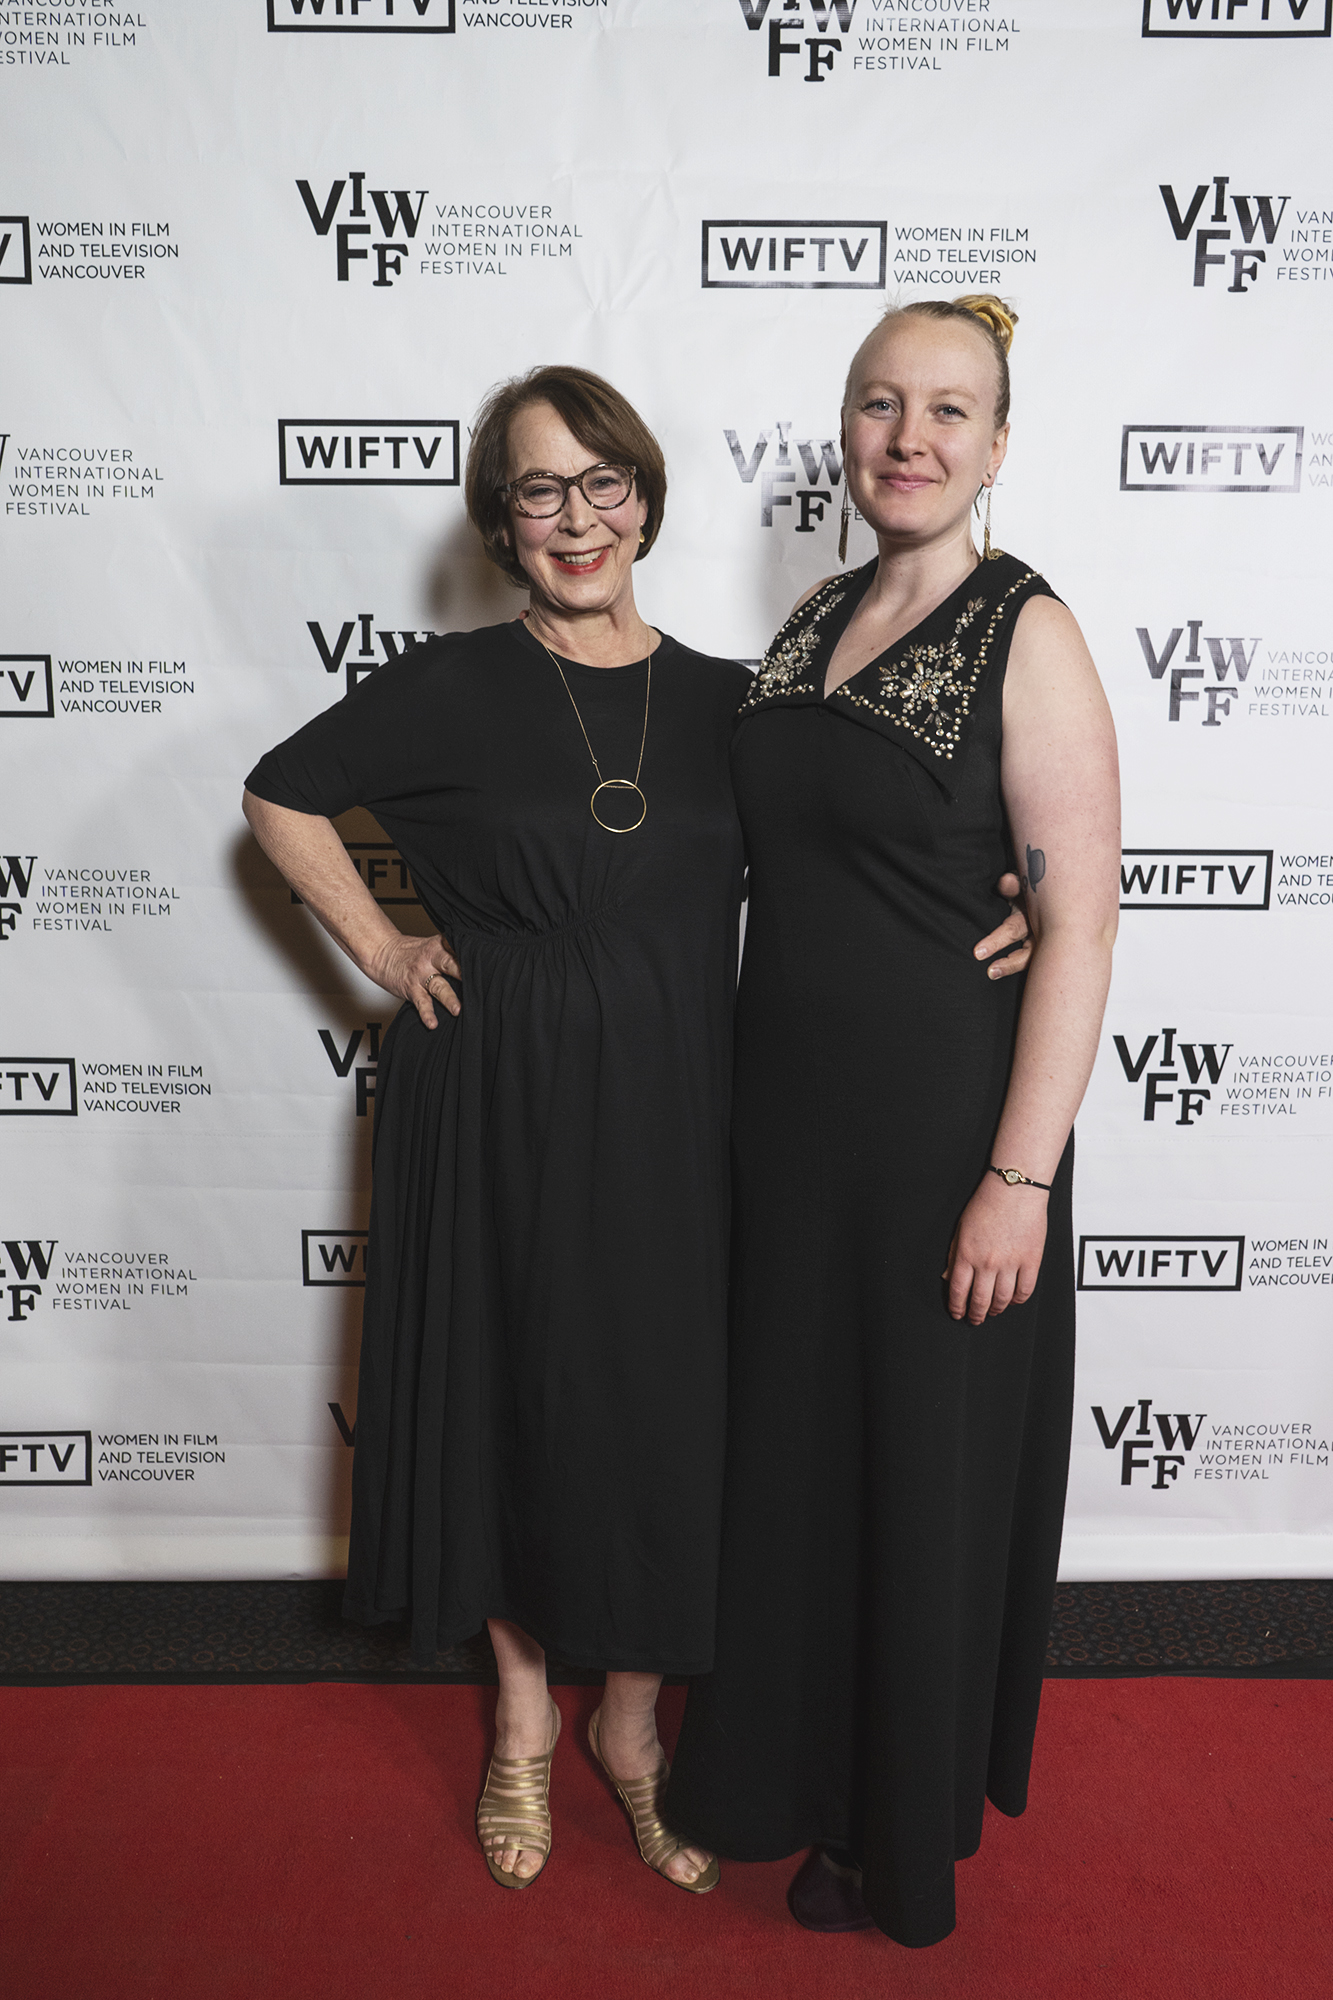 VIWFF Opening Night 27